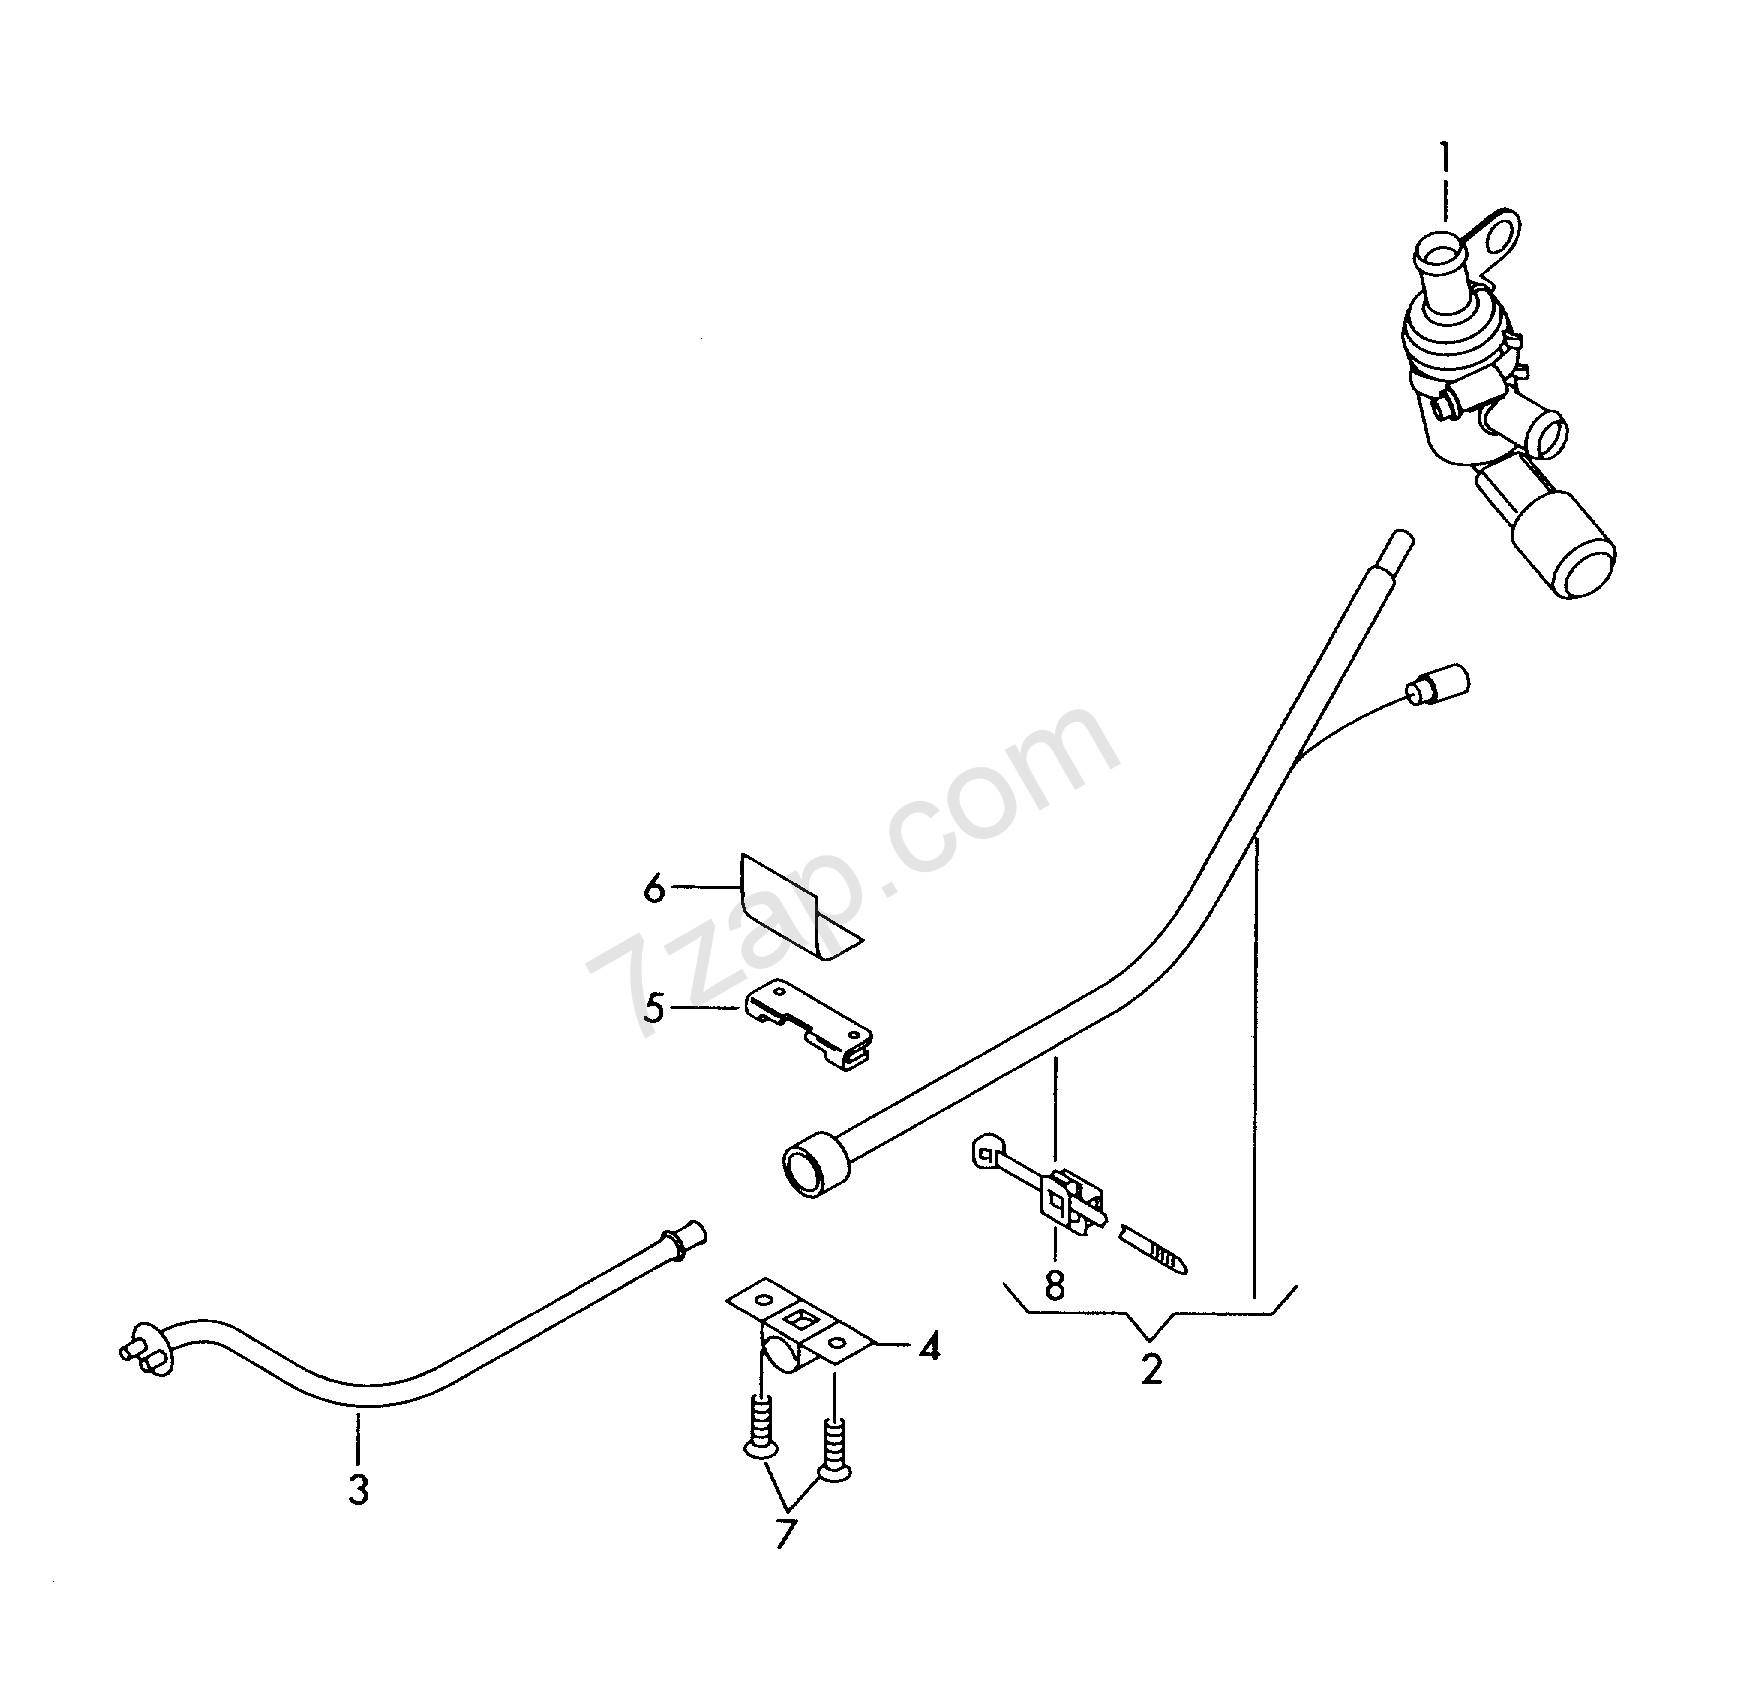 wiring harness for additional current supply octavia  oct  2008 year skoda europa 972070